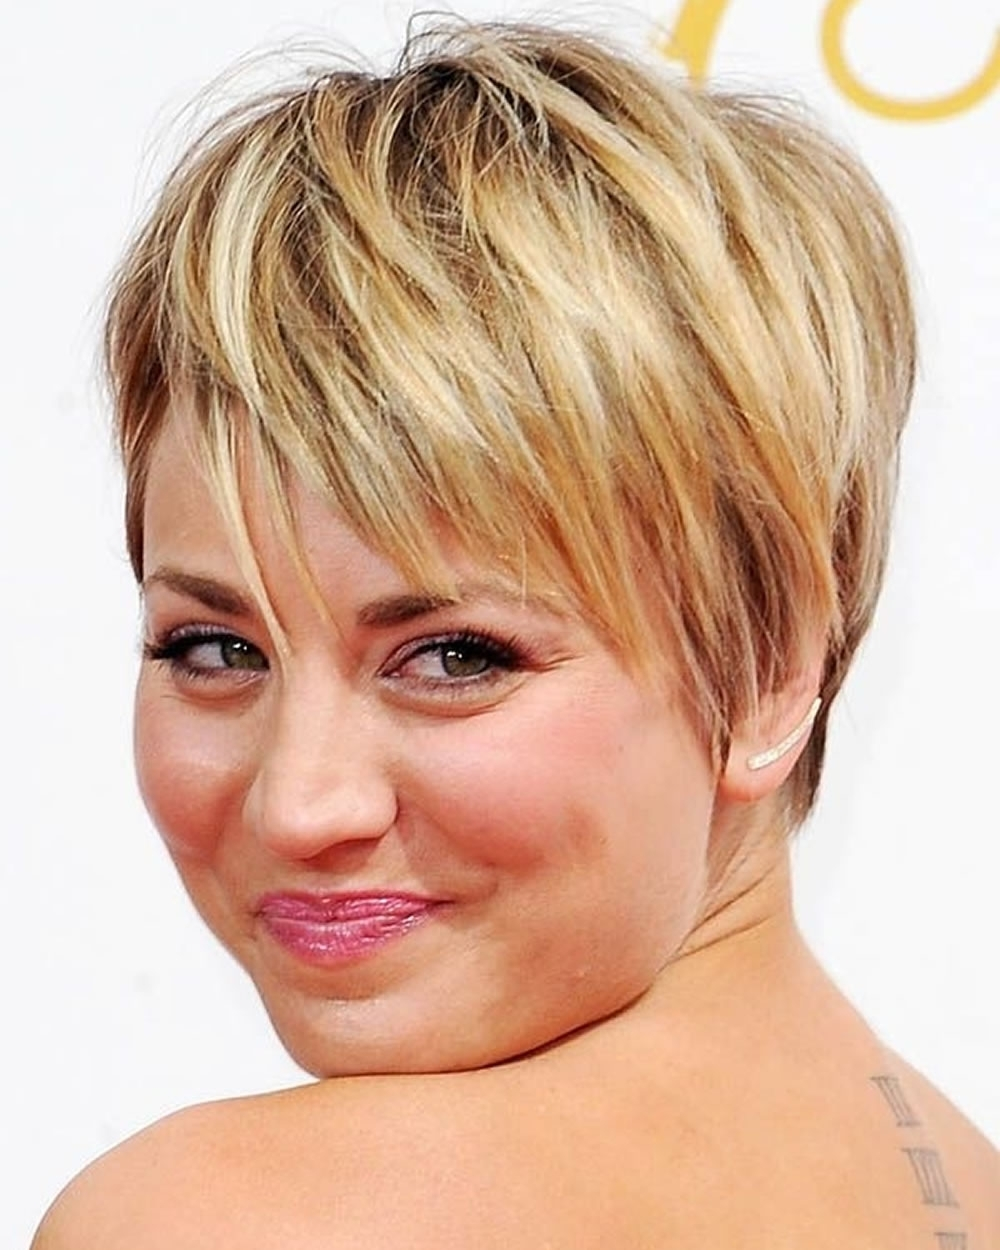 View Photos of Pixie Hairstyles For Thin Hair (Showing 10 of 15 Photos)